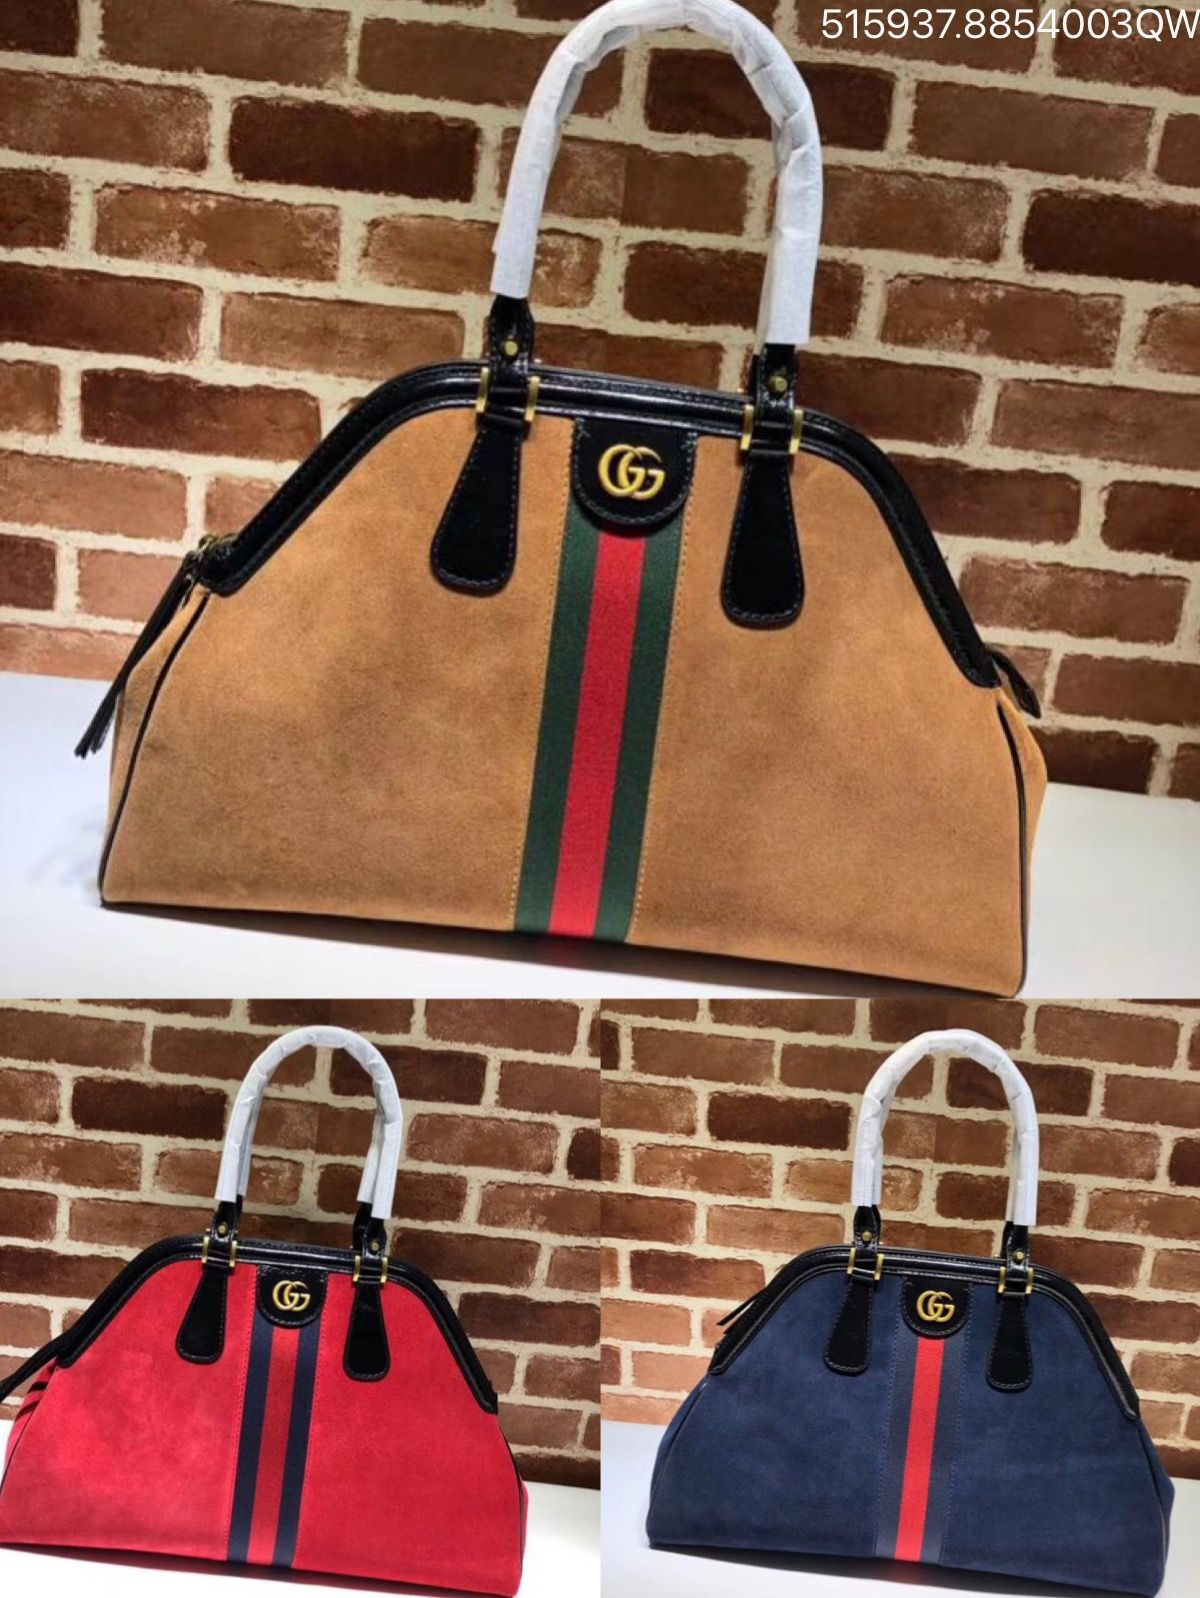 e73741deb6f Gucci rebelle large top handle tote bag suede totes 515937